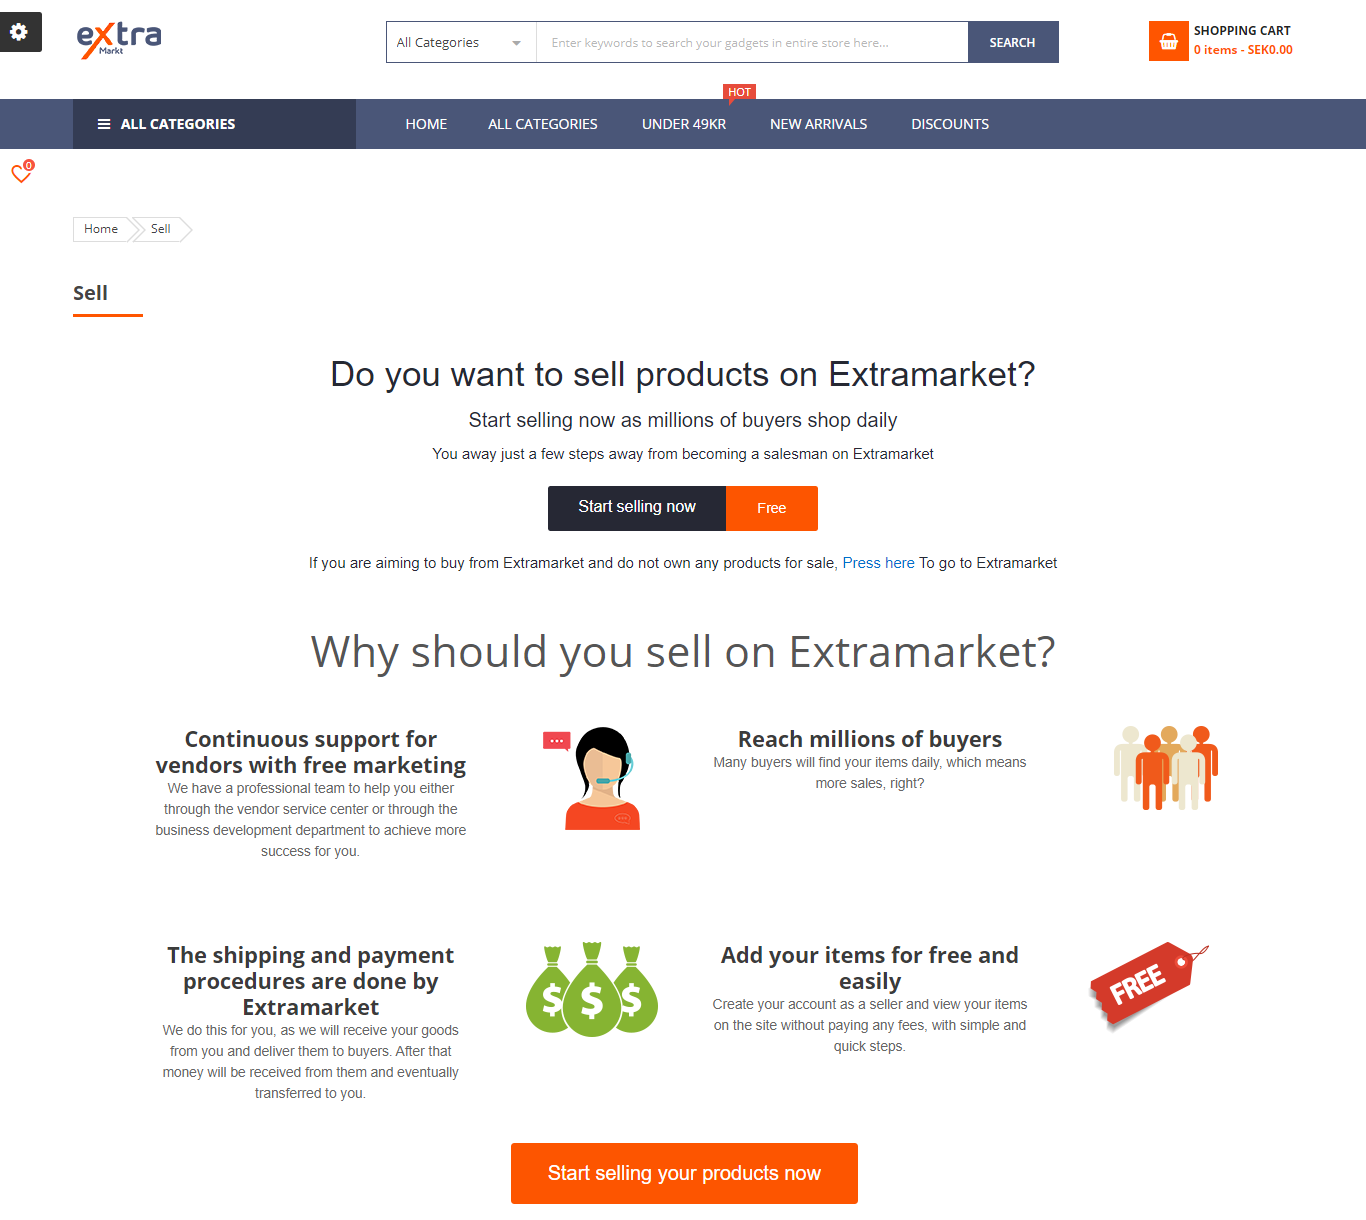 extramarkt-marketplace-sell-page